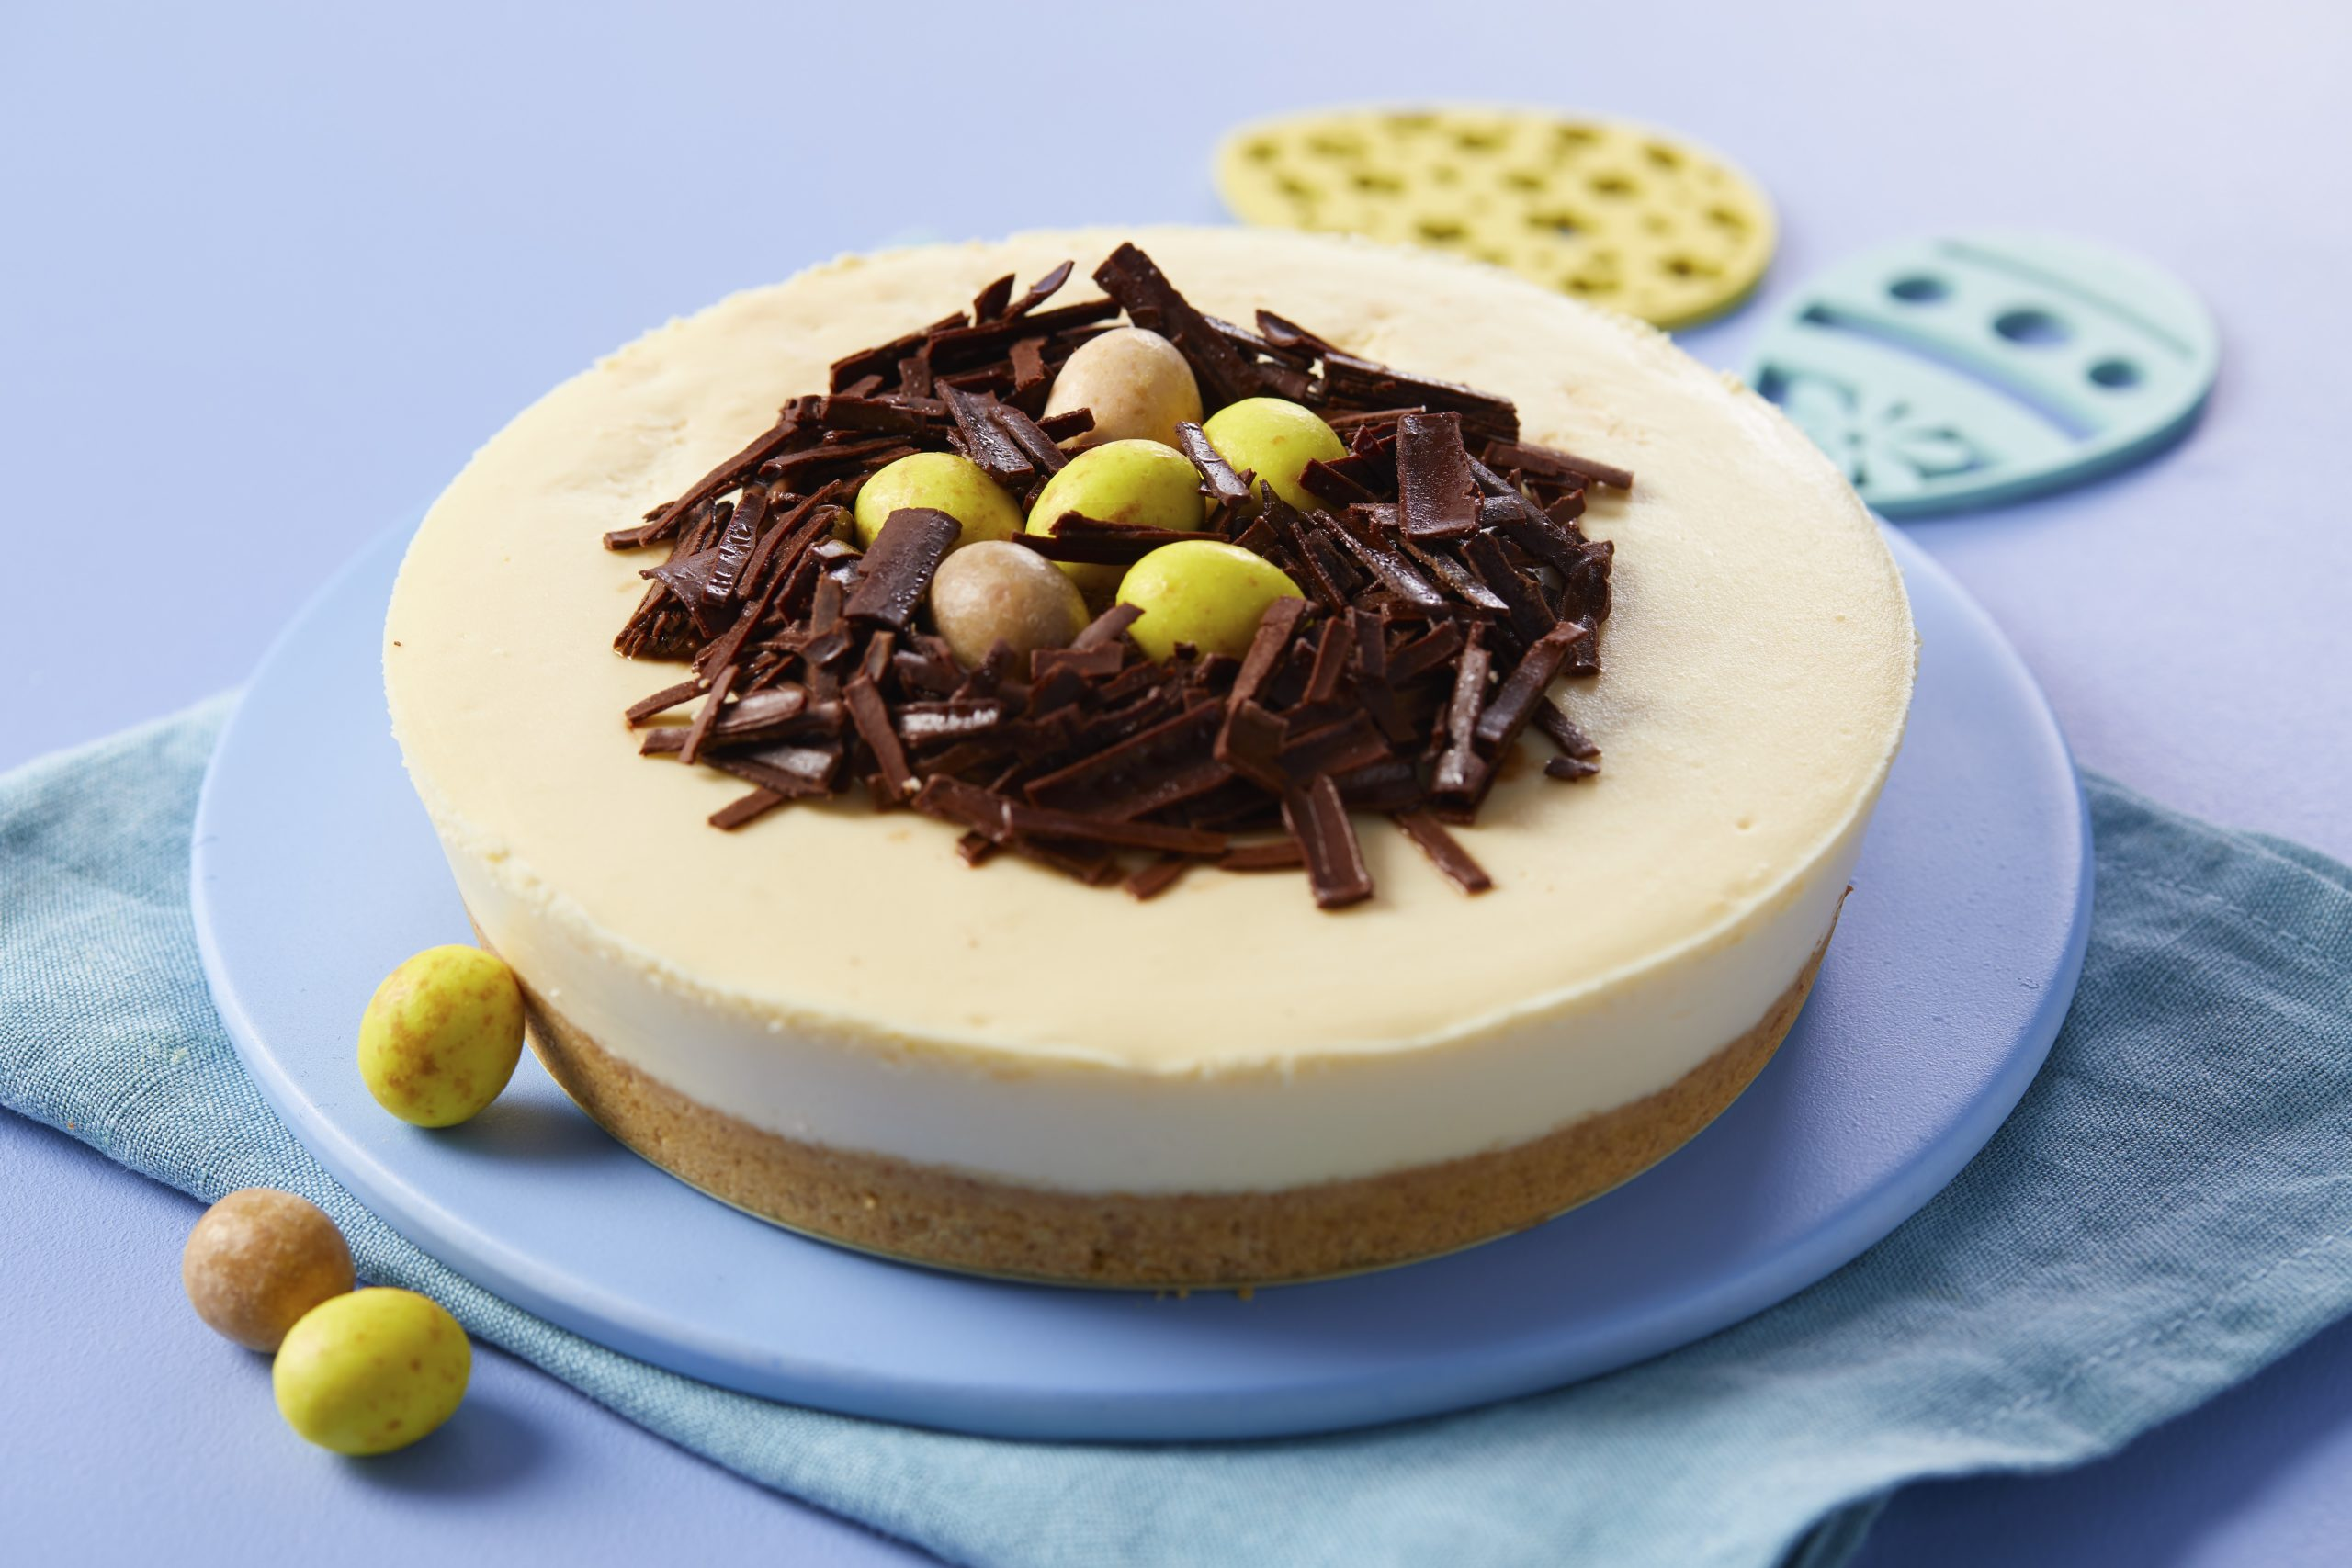 The cheesecake comes in chocolate or vanilla